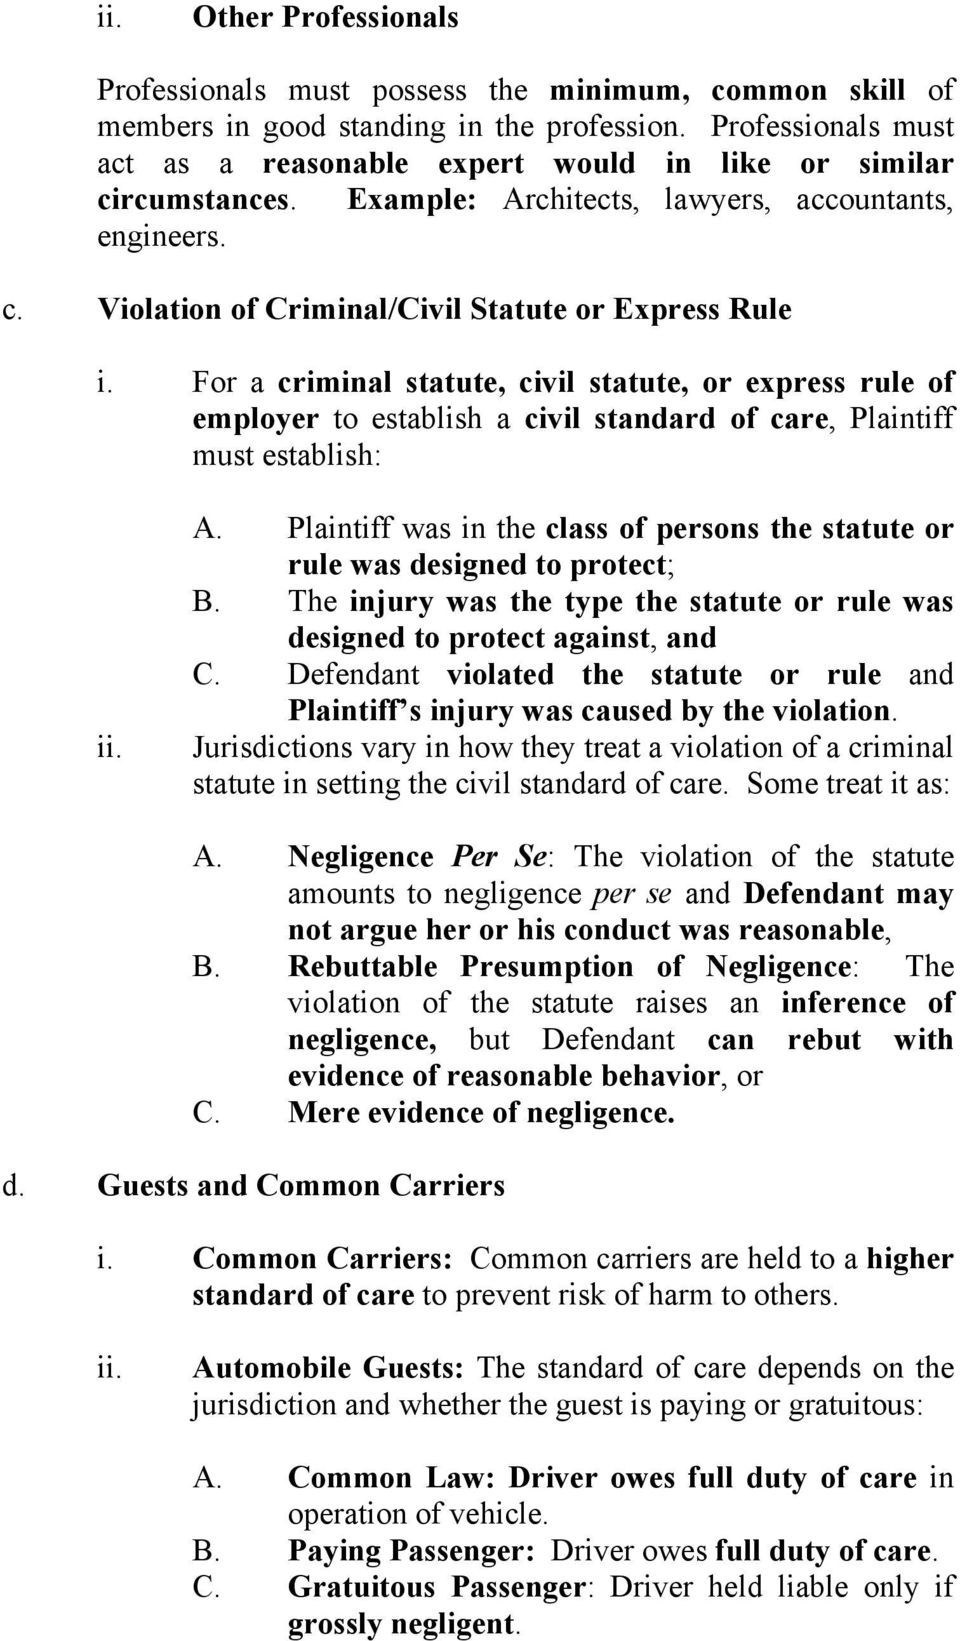 For a criminal statute, civil statute, or express rule of employer to establish a civil standard of care, Plaintiff must establish: ii. A.